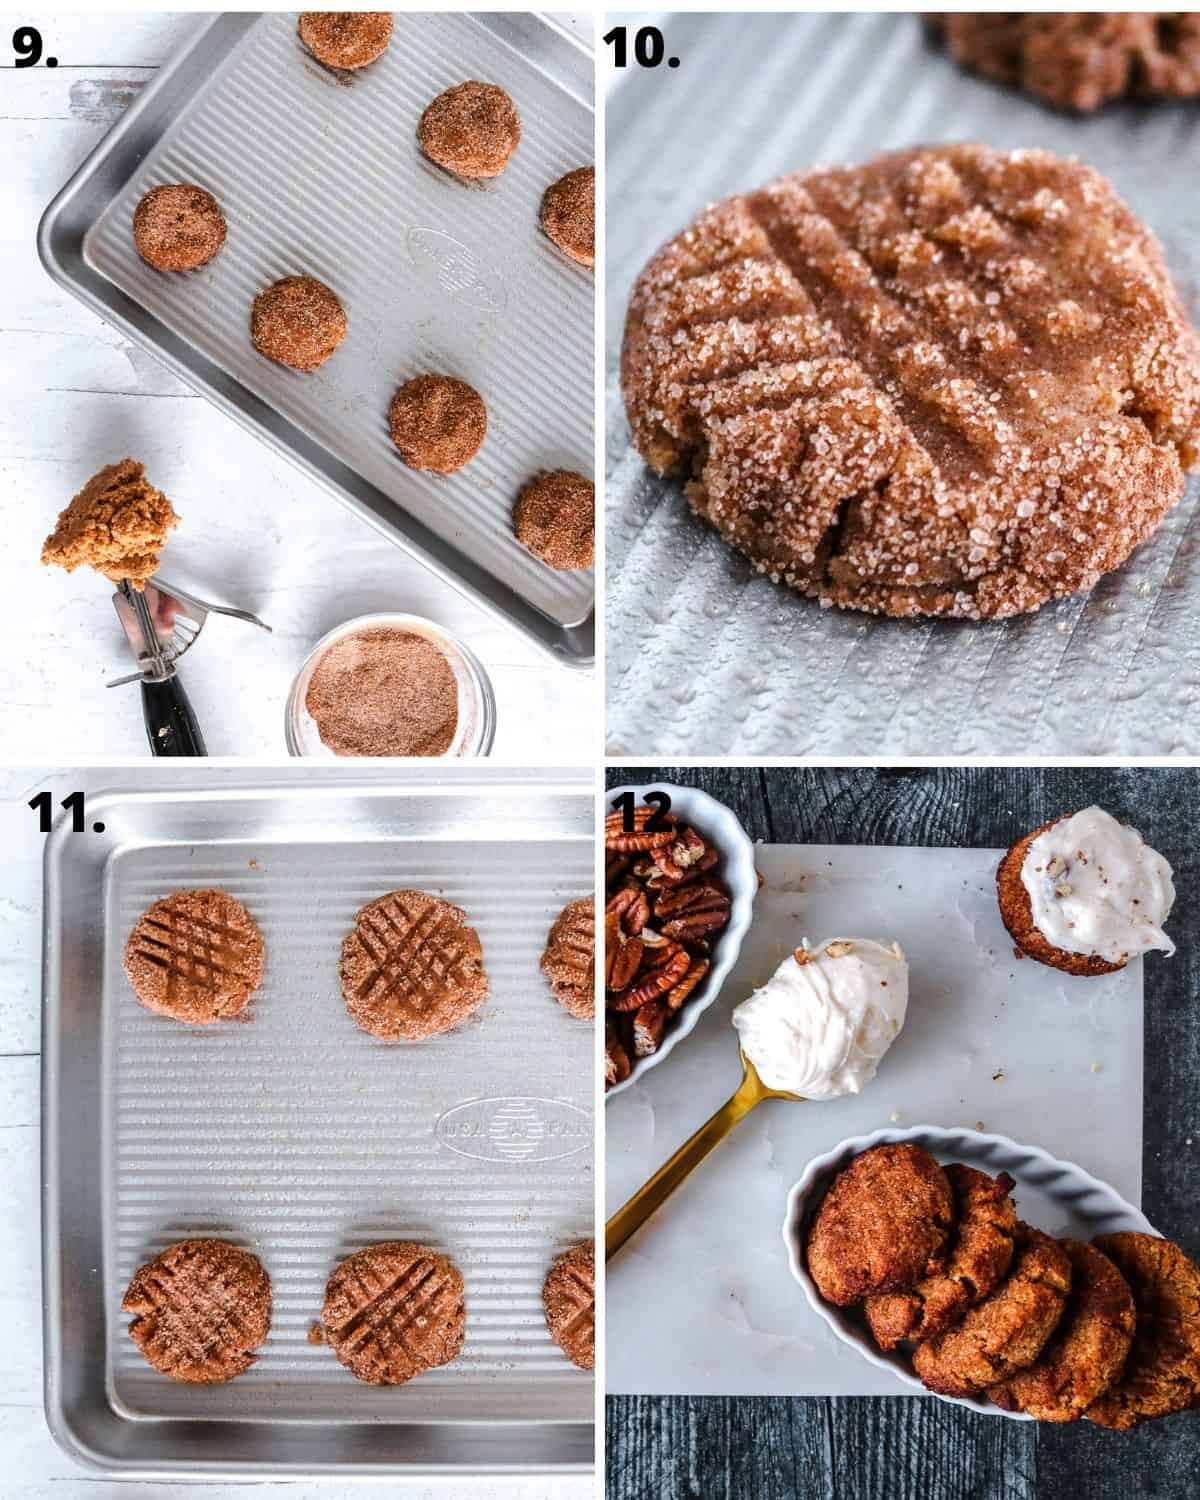 The steps to mold snickerdoodle cookies, place on a baking tray. Then, decorate with pecan cream cheese frosting.